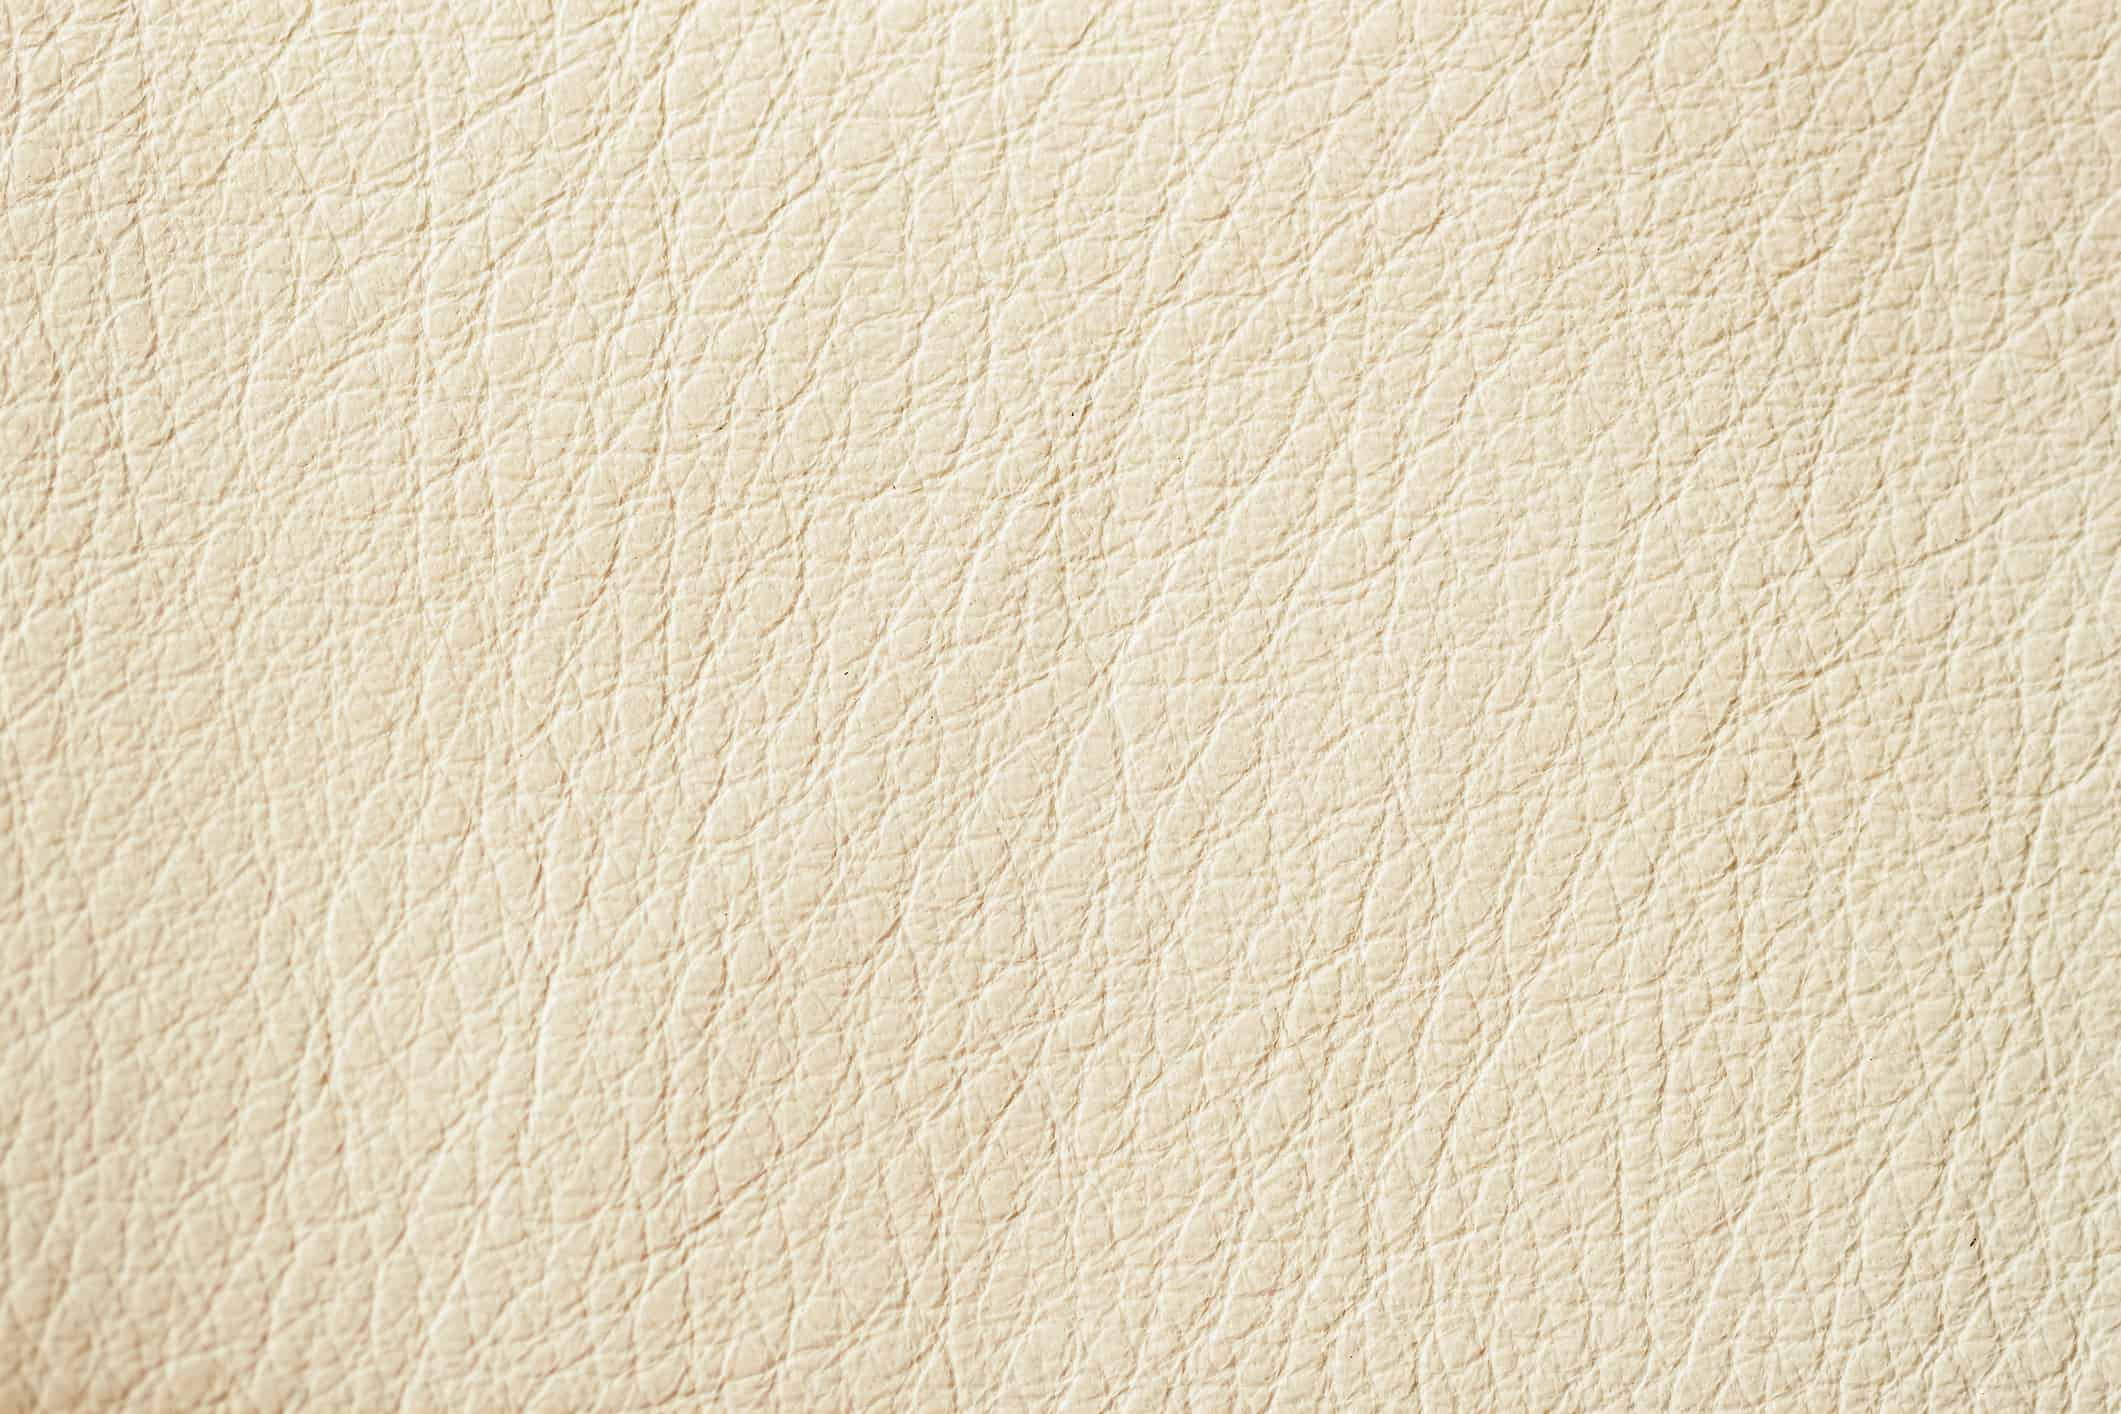 Texture of Genuine Leather